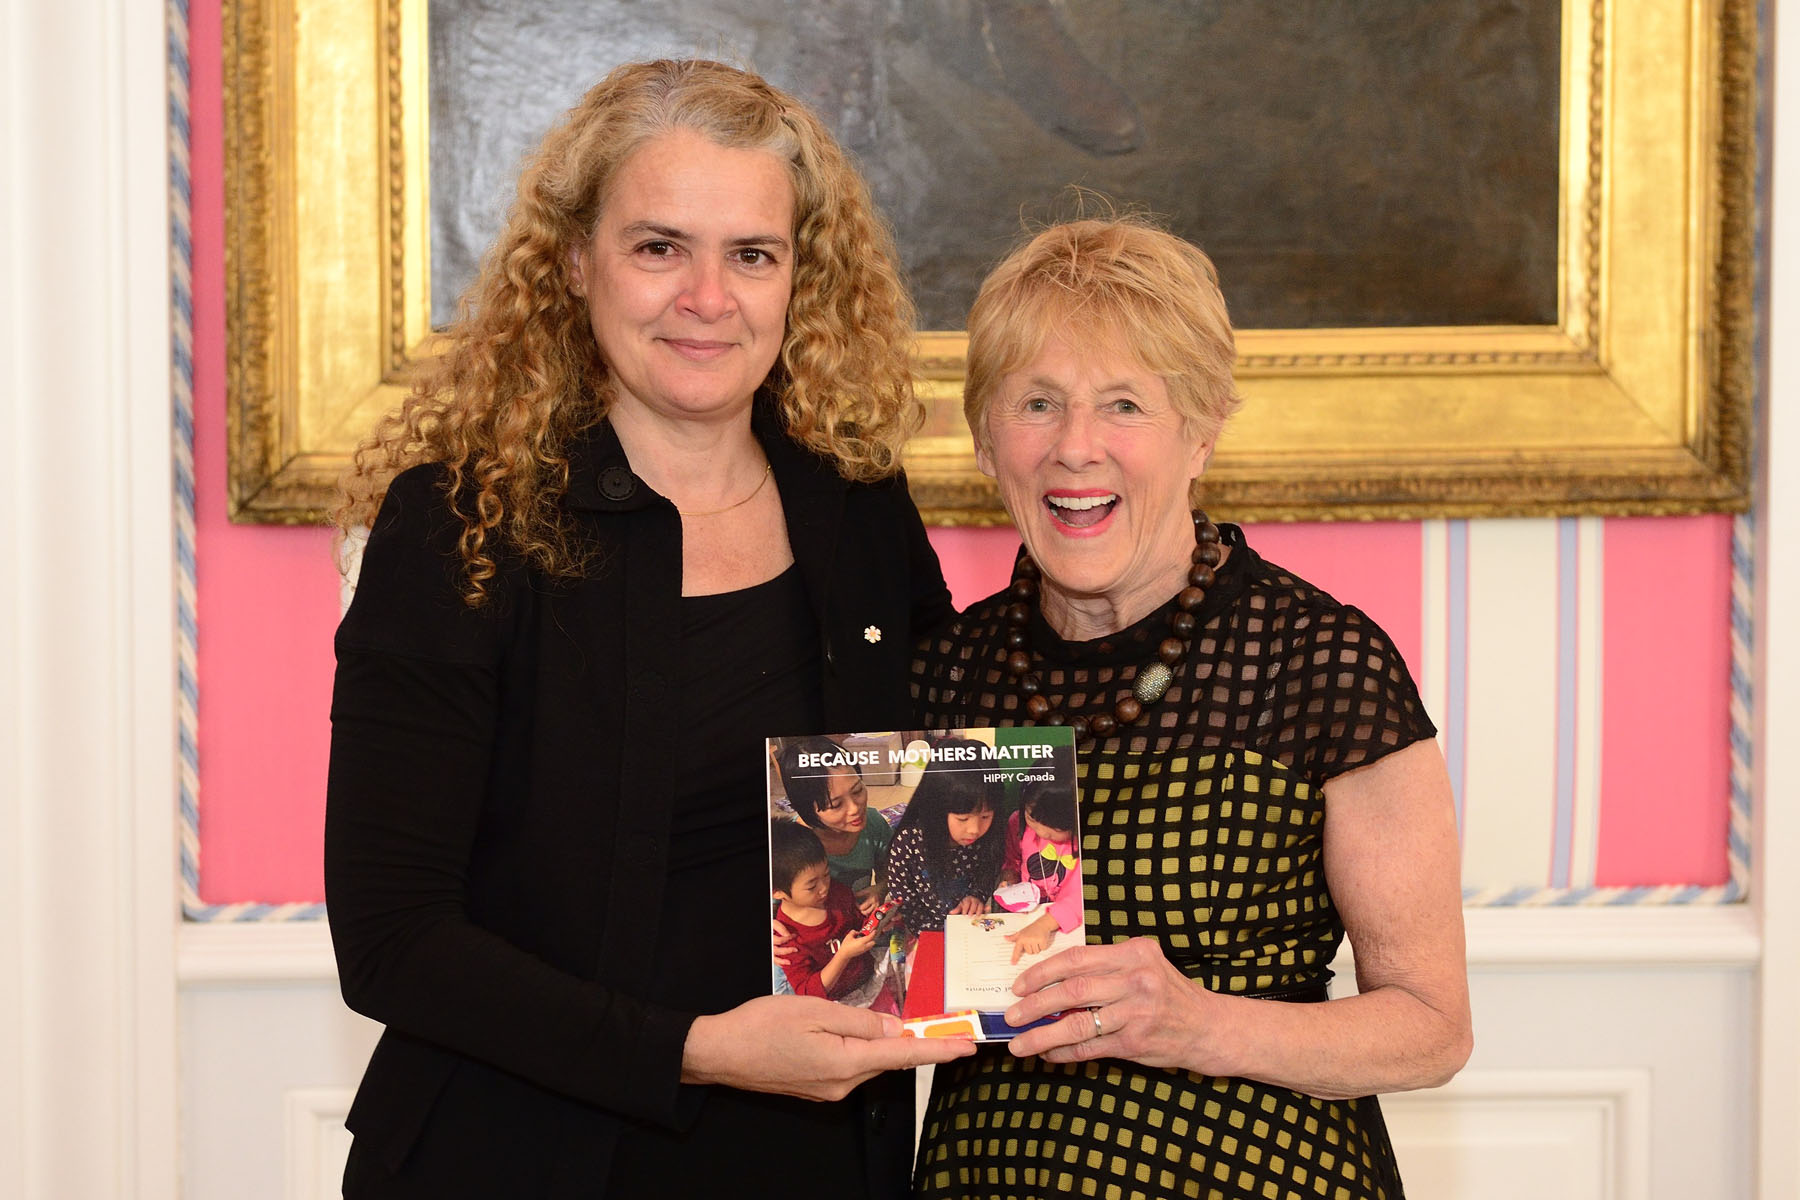 Dr. Julie Payette, astronaut, received the Because Mothers Matter Awards given to a prominent Canadian mother who hase achieved noteworthy success while giving back to her community.